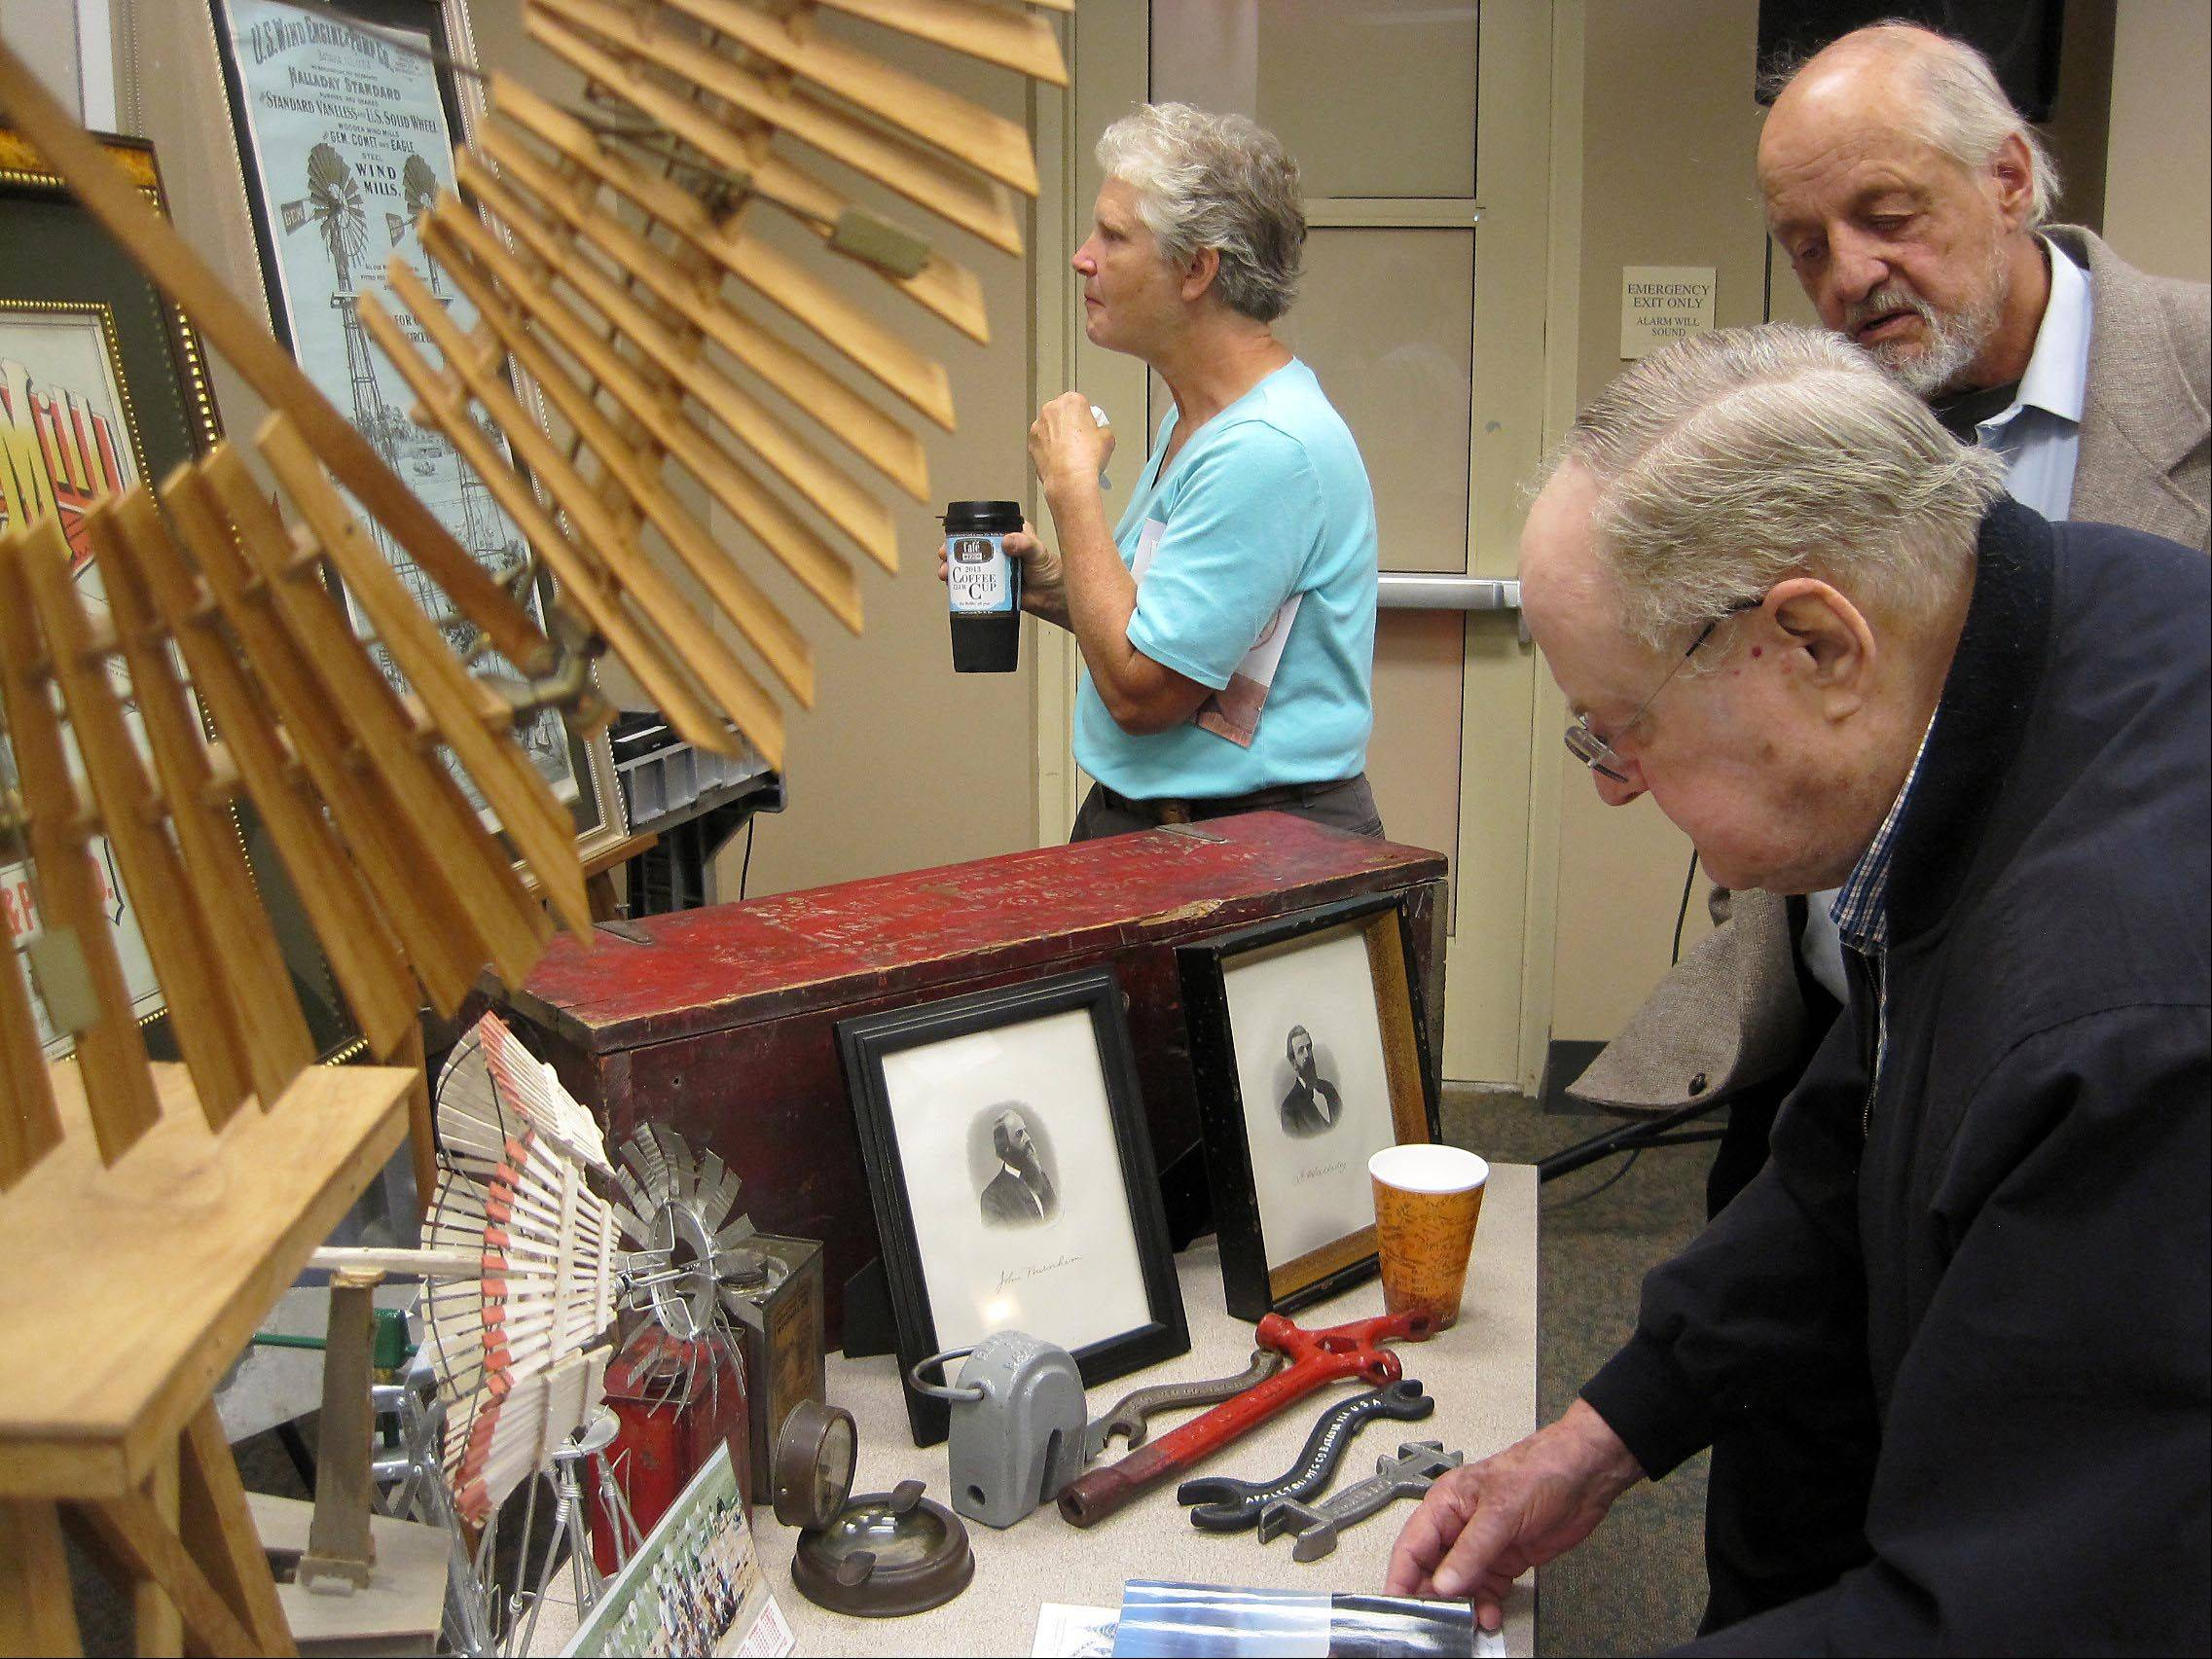 Hugh Cole of Wilmette, foreground, looks at a display of historic windmill artifacts on Saturday at the Batavia Public Library. Next to him is Dick Riseling, a Batavia native who now lives in New York. Both men attended a ceremony that designated Batavia�s windmill collection as an engineering landmark by the American Society of Mechanical Engineers.